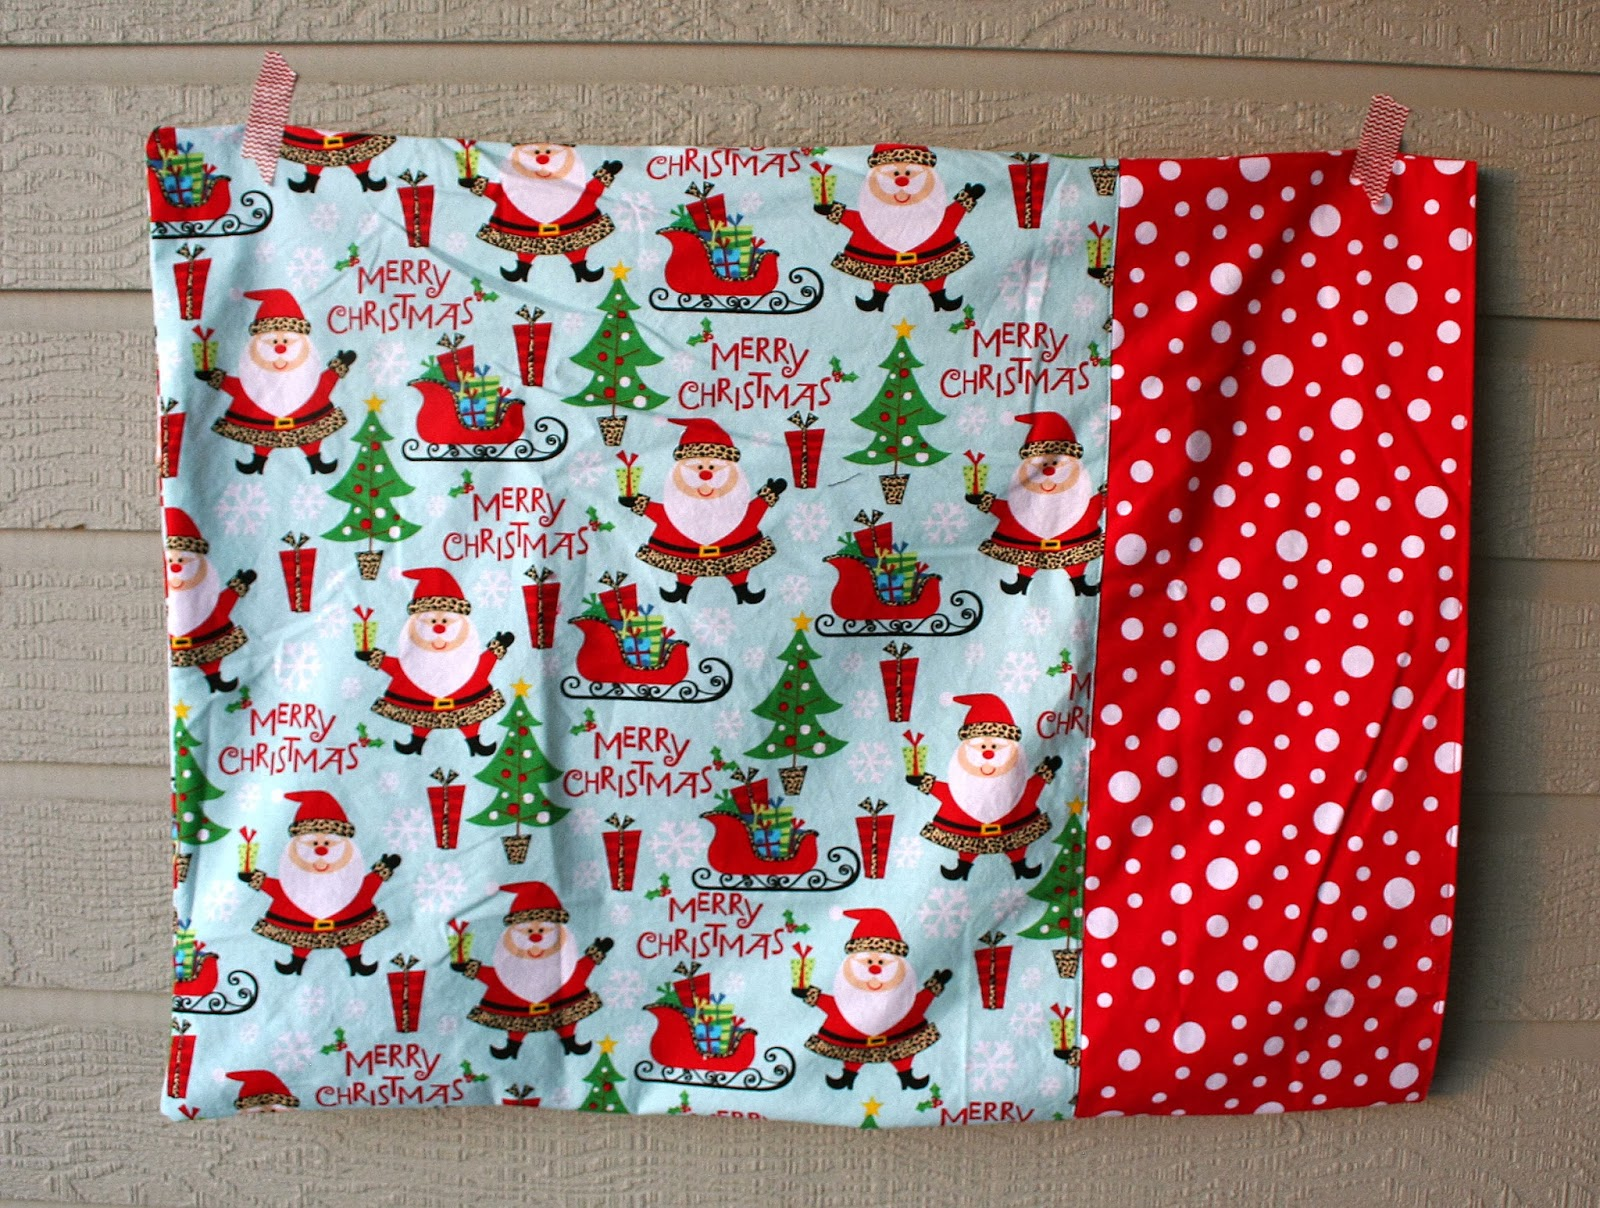 Simplyprice a new tradition christmas pillowcases - Bricolage de noel facile pour adulte ...